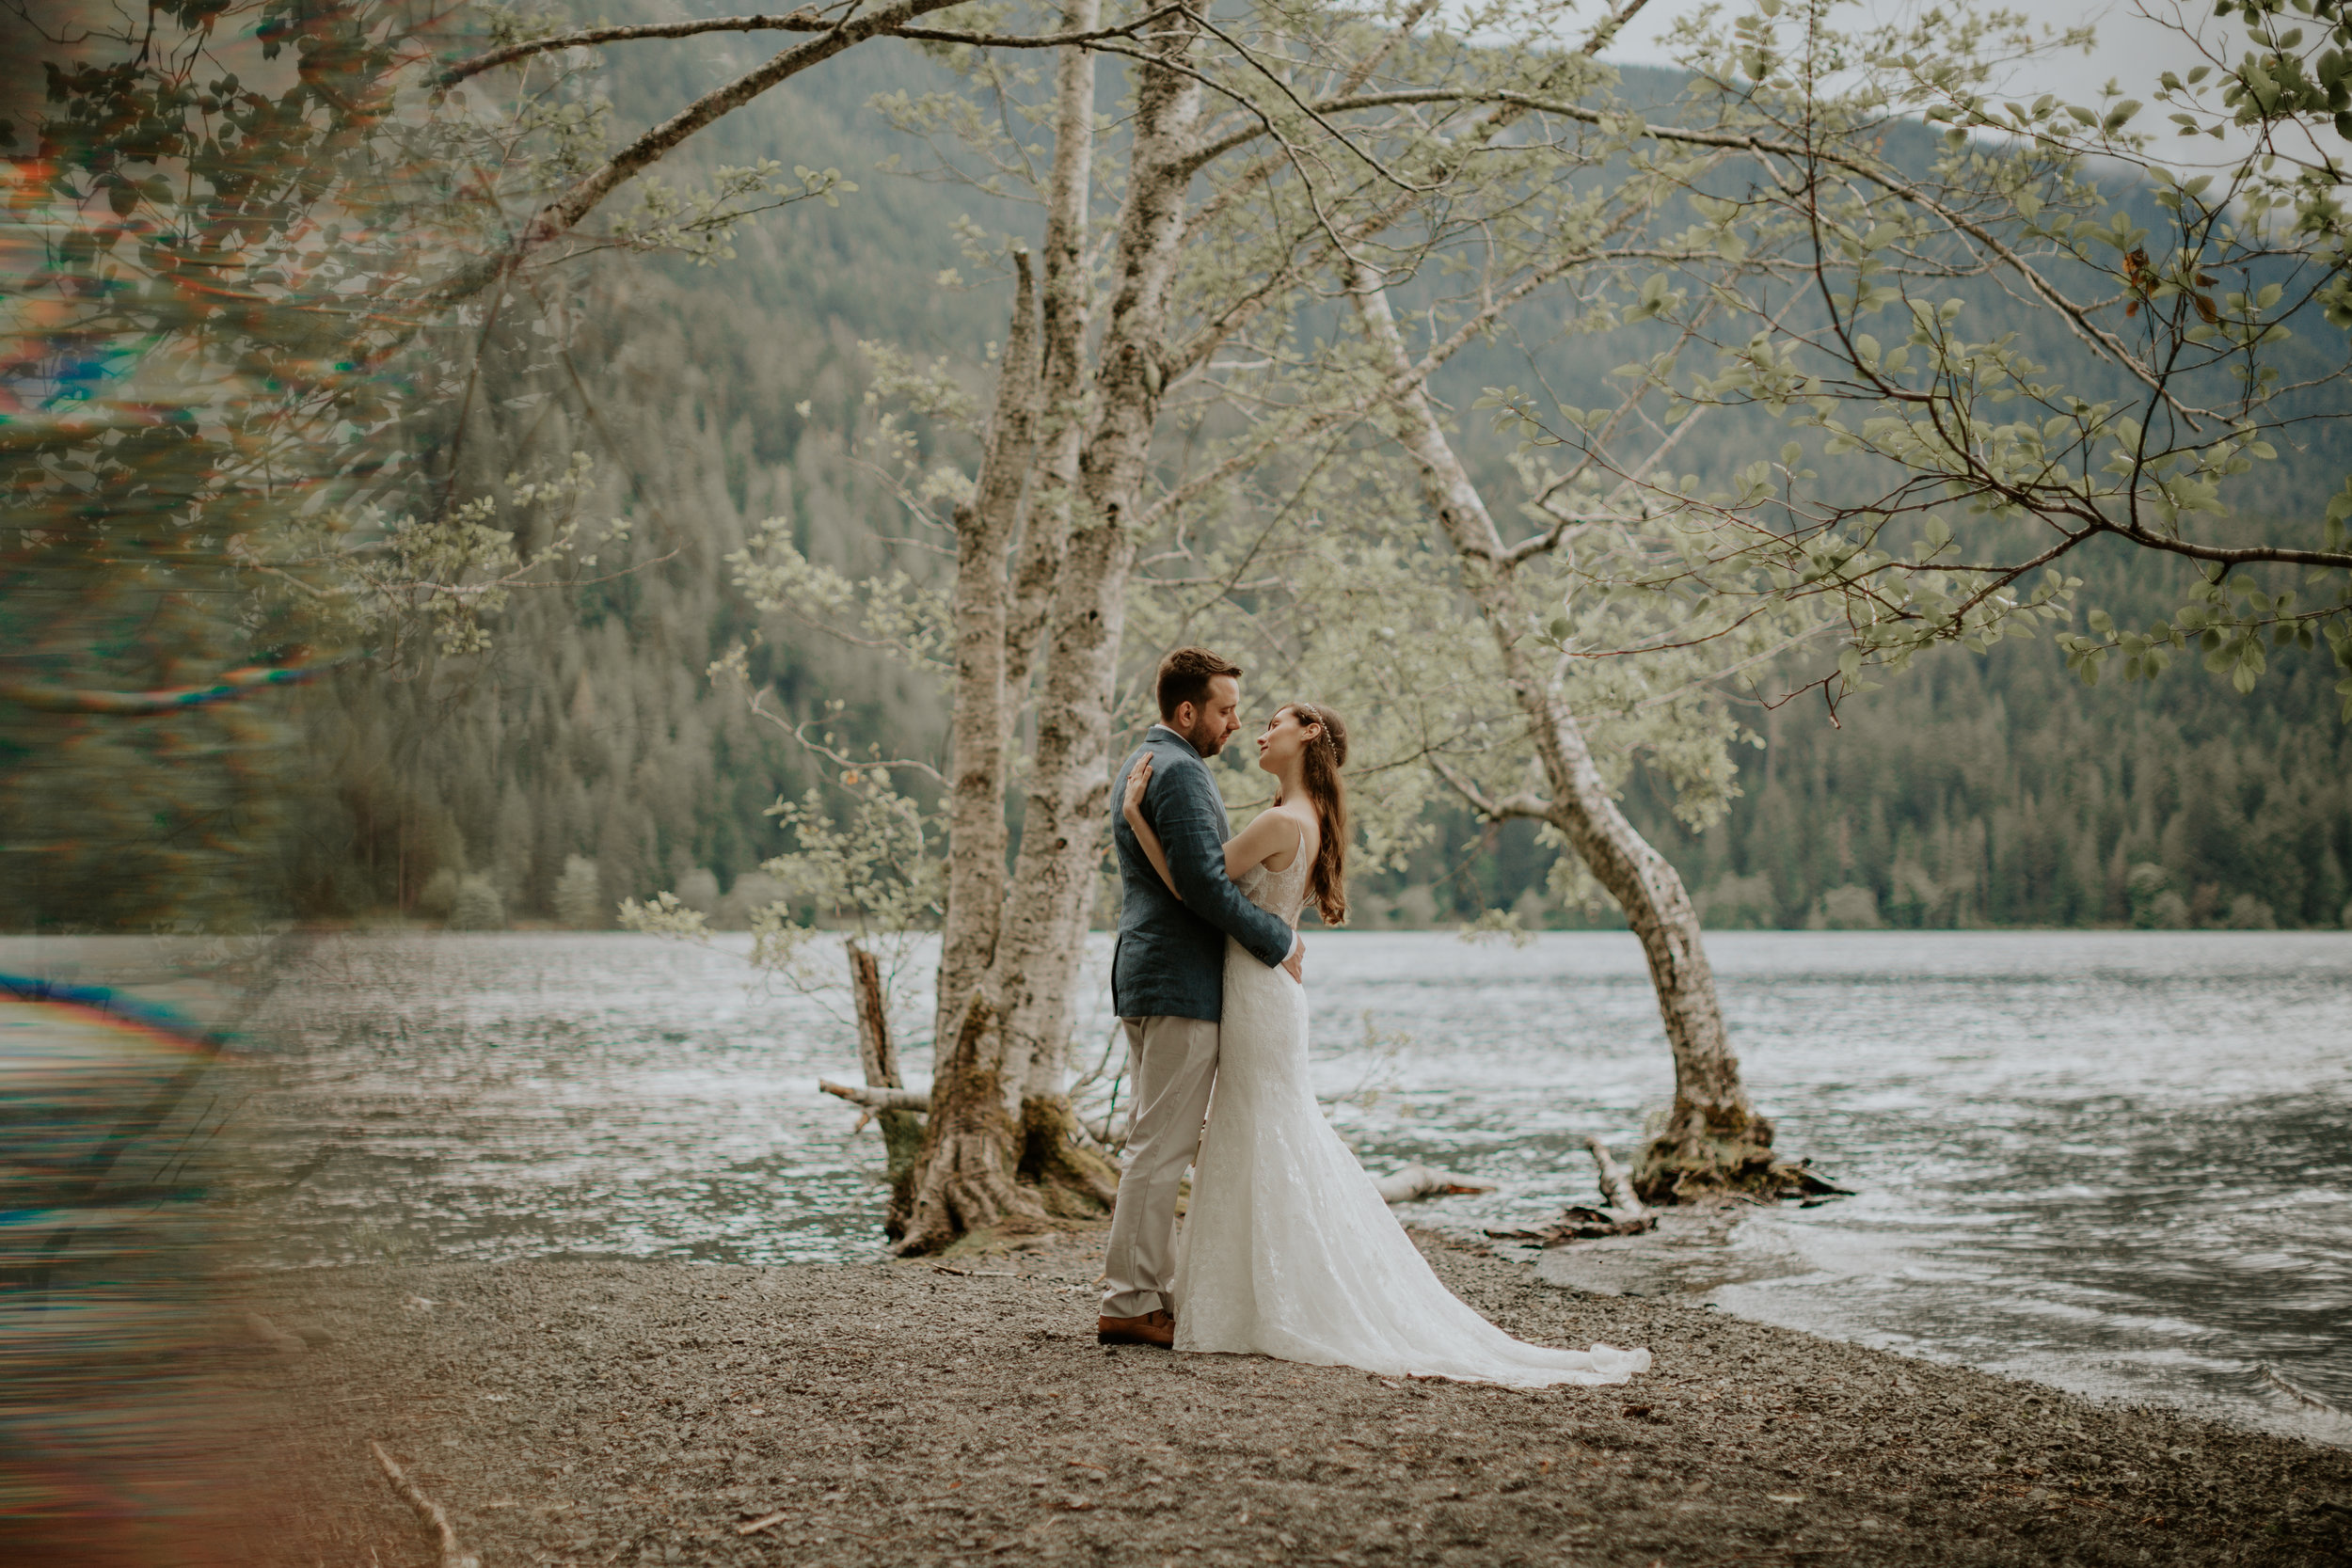 PNW-elopement-wedding-engagement-olympic national park-port angeles-hurricane ridge-lake crescent-kayla dawn photography- photographer-photography-kayladawnphoto-271.jpg